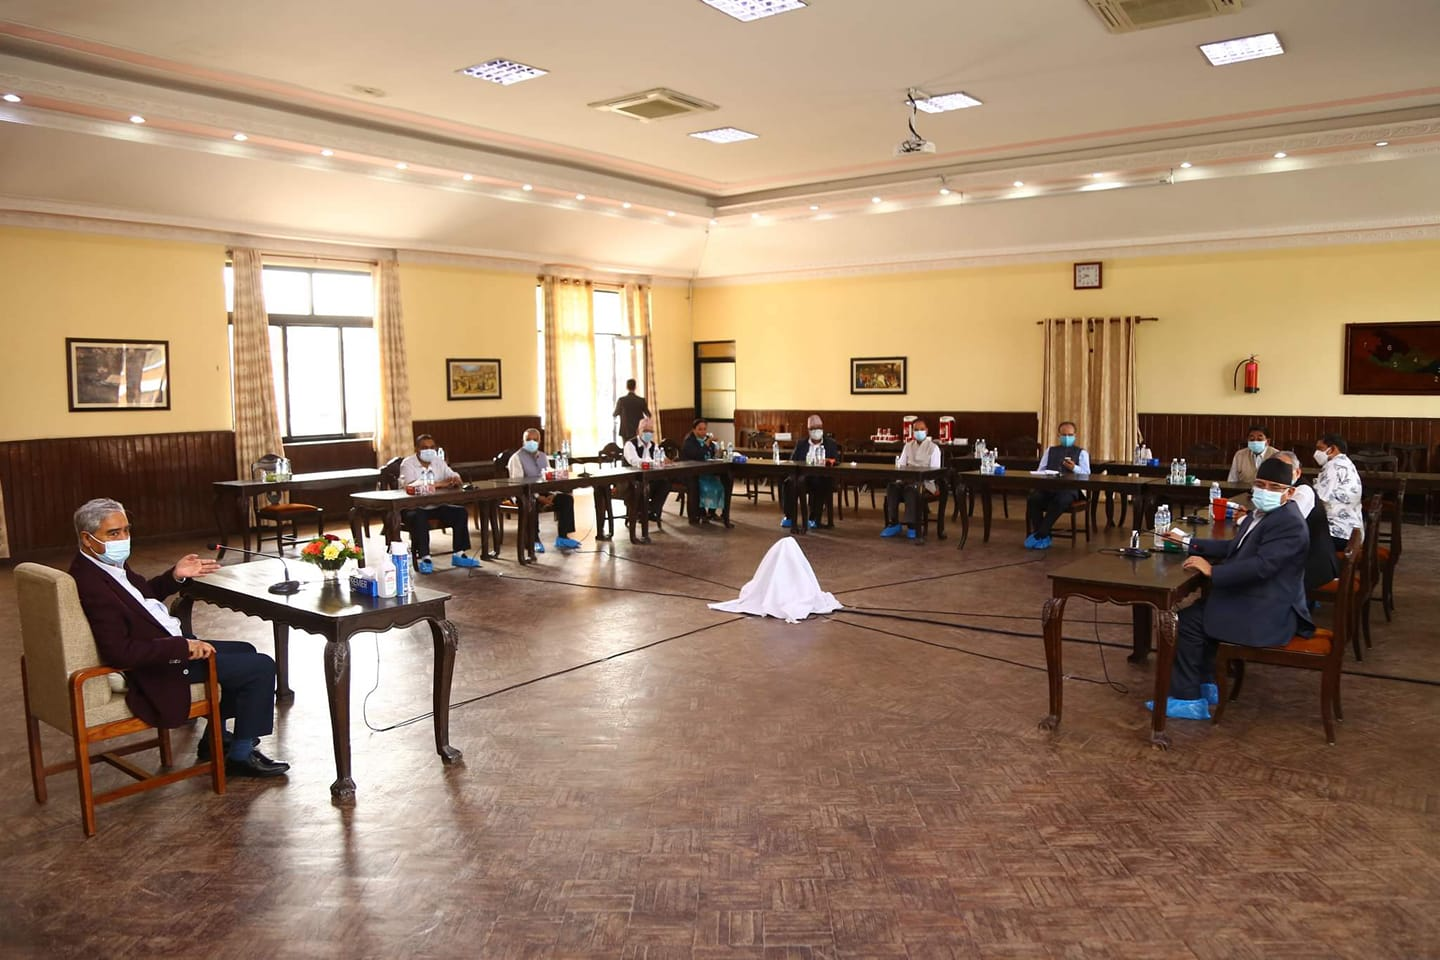 Meeting of the ruling coalition: Preparations for the expansion of the Council of Ministers